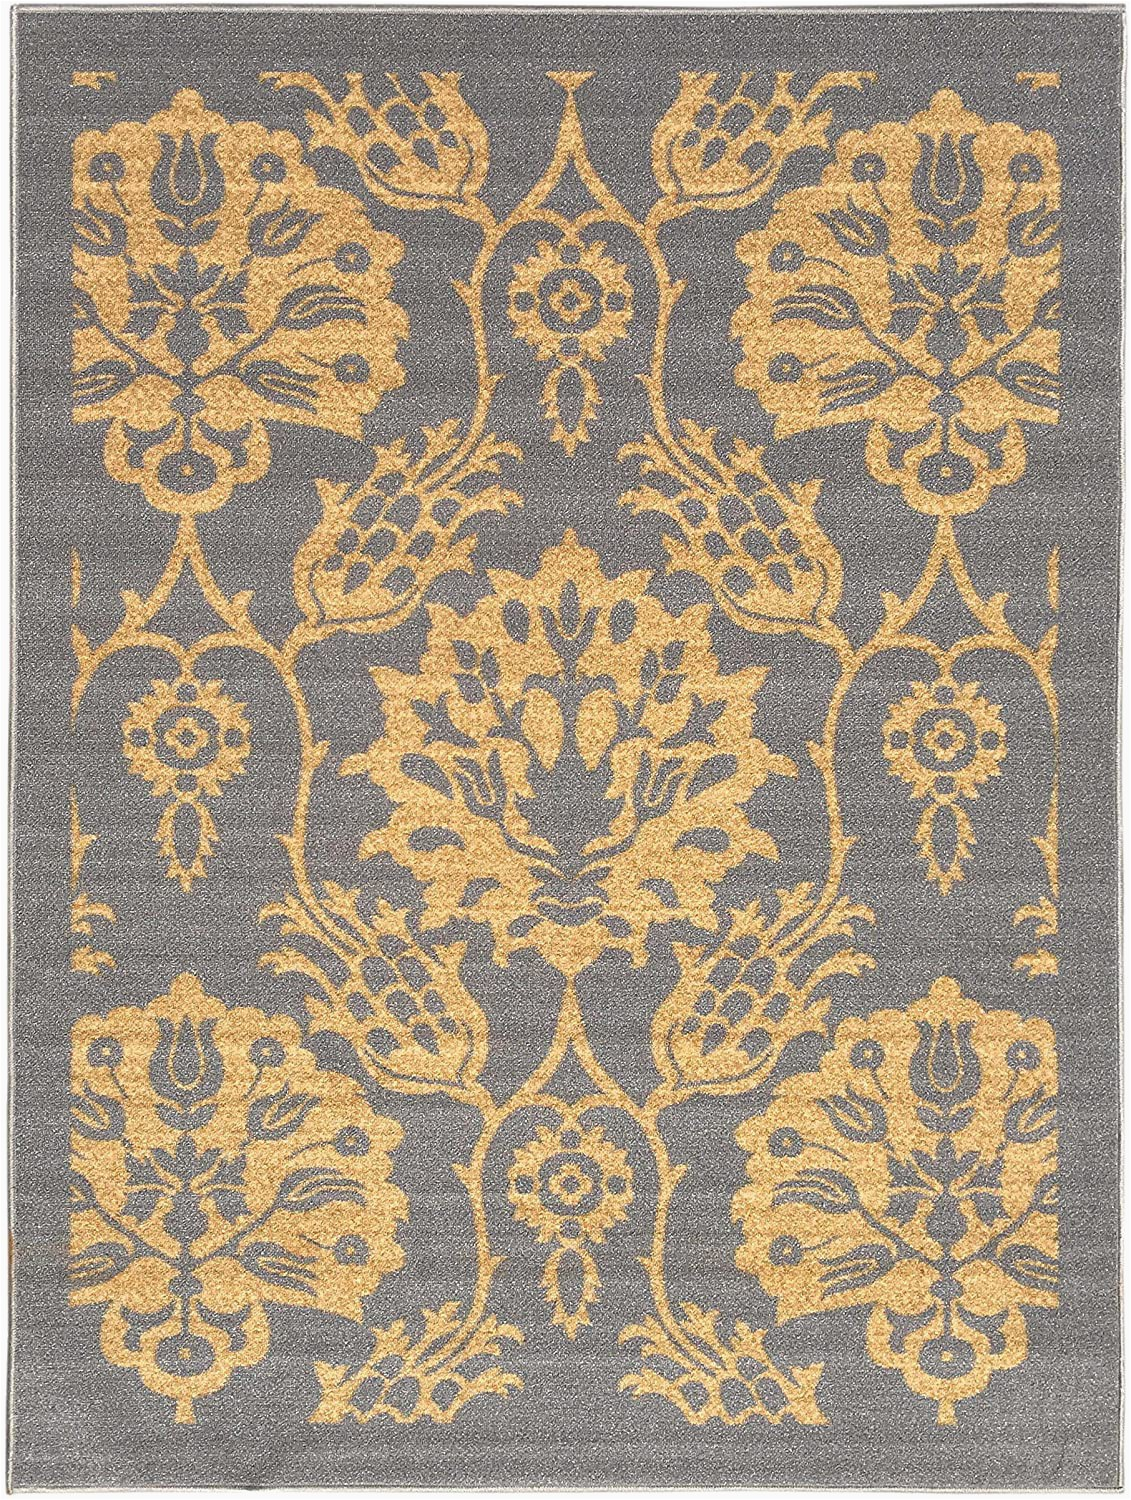 Rubber Backed area Rugs 5×7 5 Feet X 7 Feet Non Skid Rubber Backed area Rug